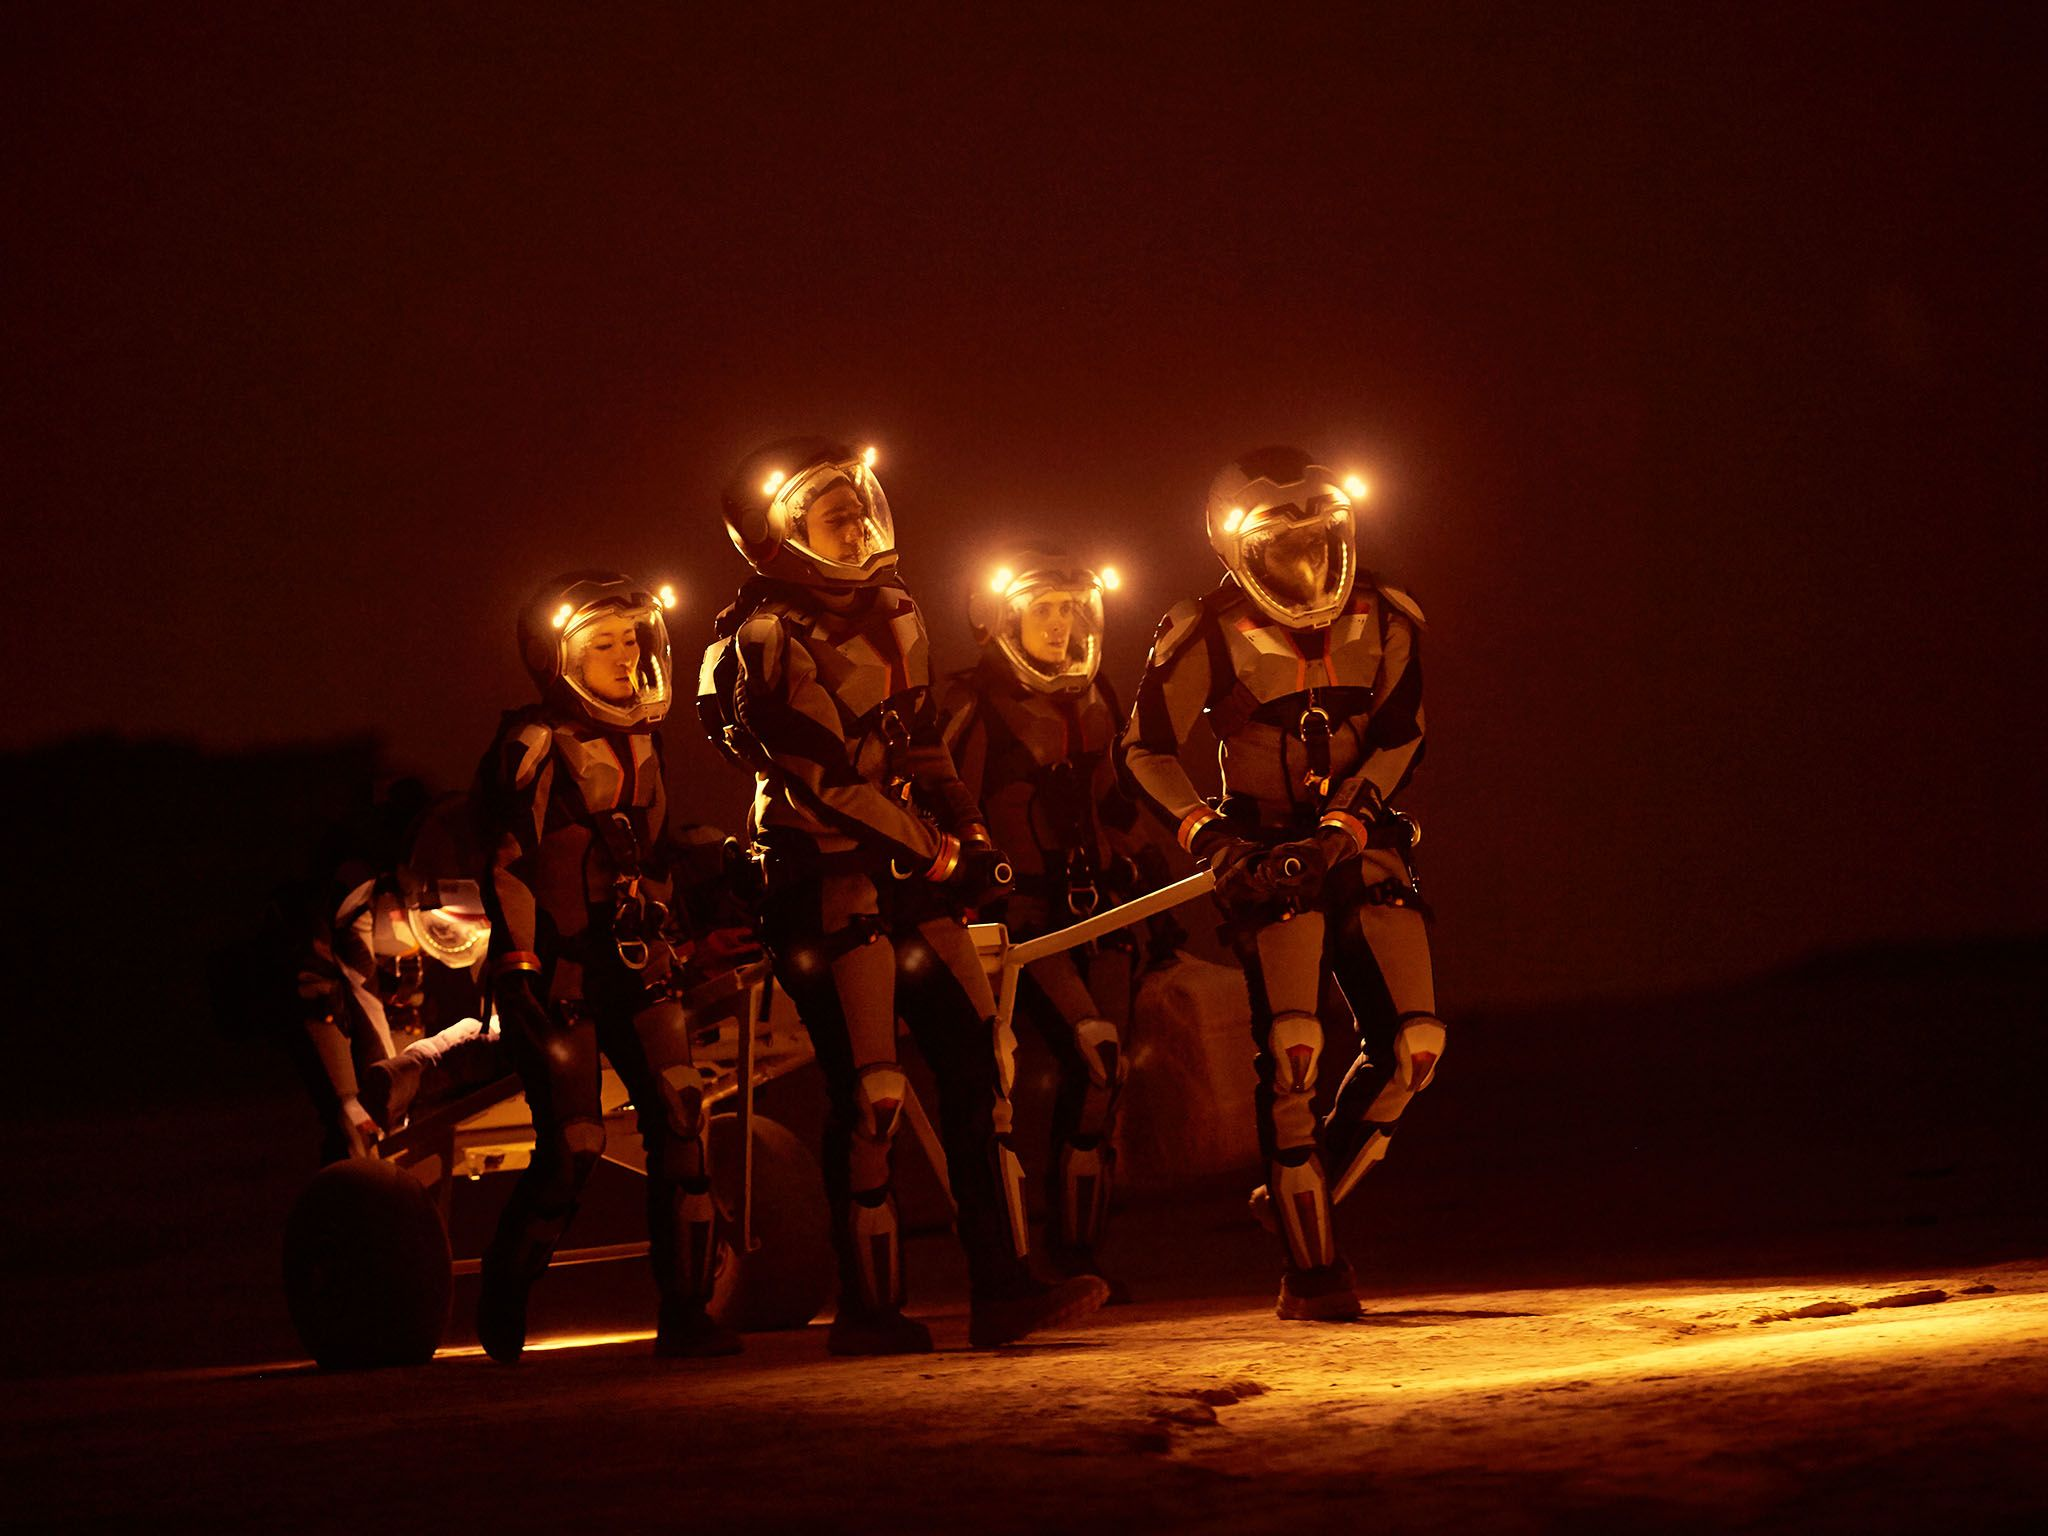 Reenactment: The crew on Mars. This image is from Mars. [Photo of the day - December 2016]